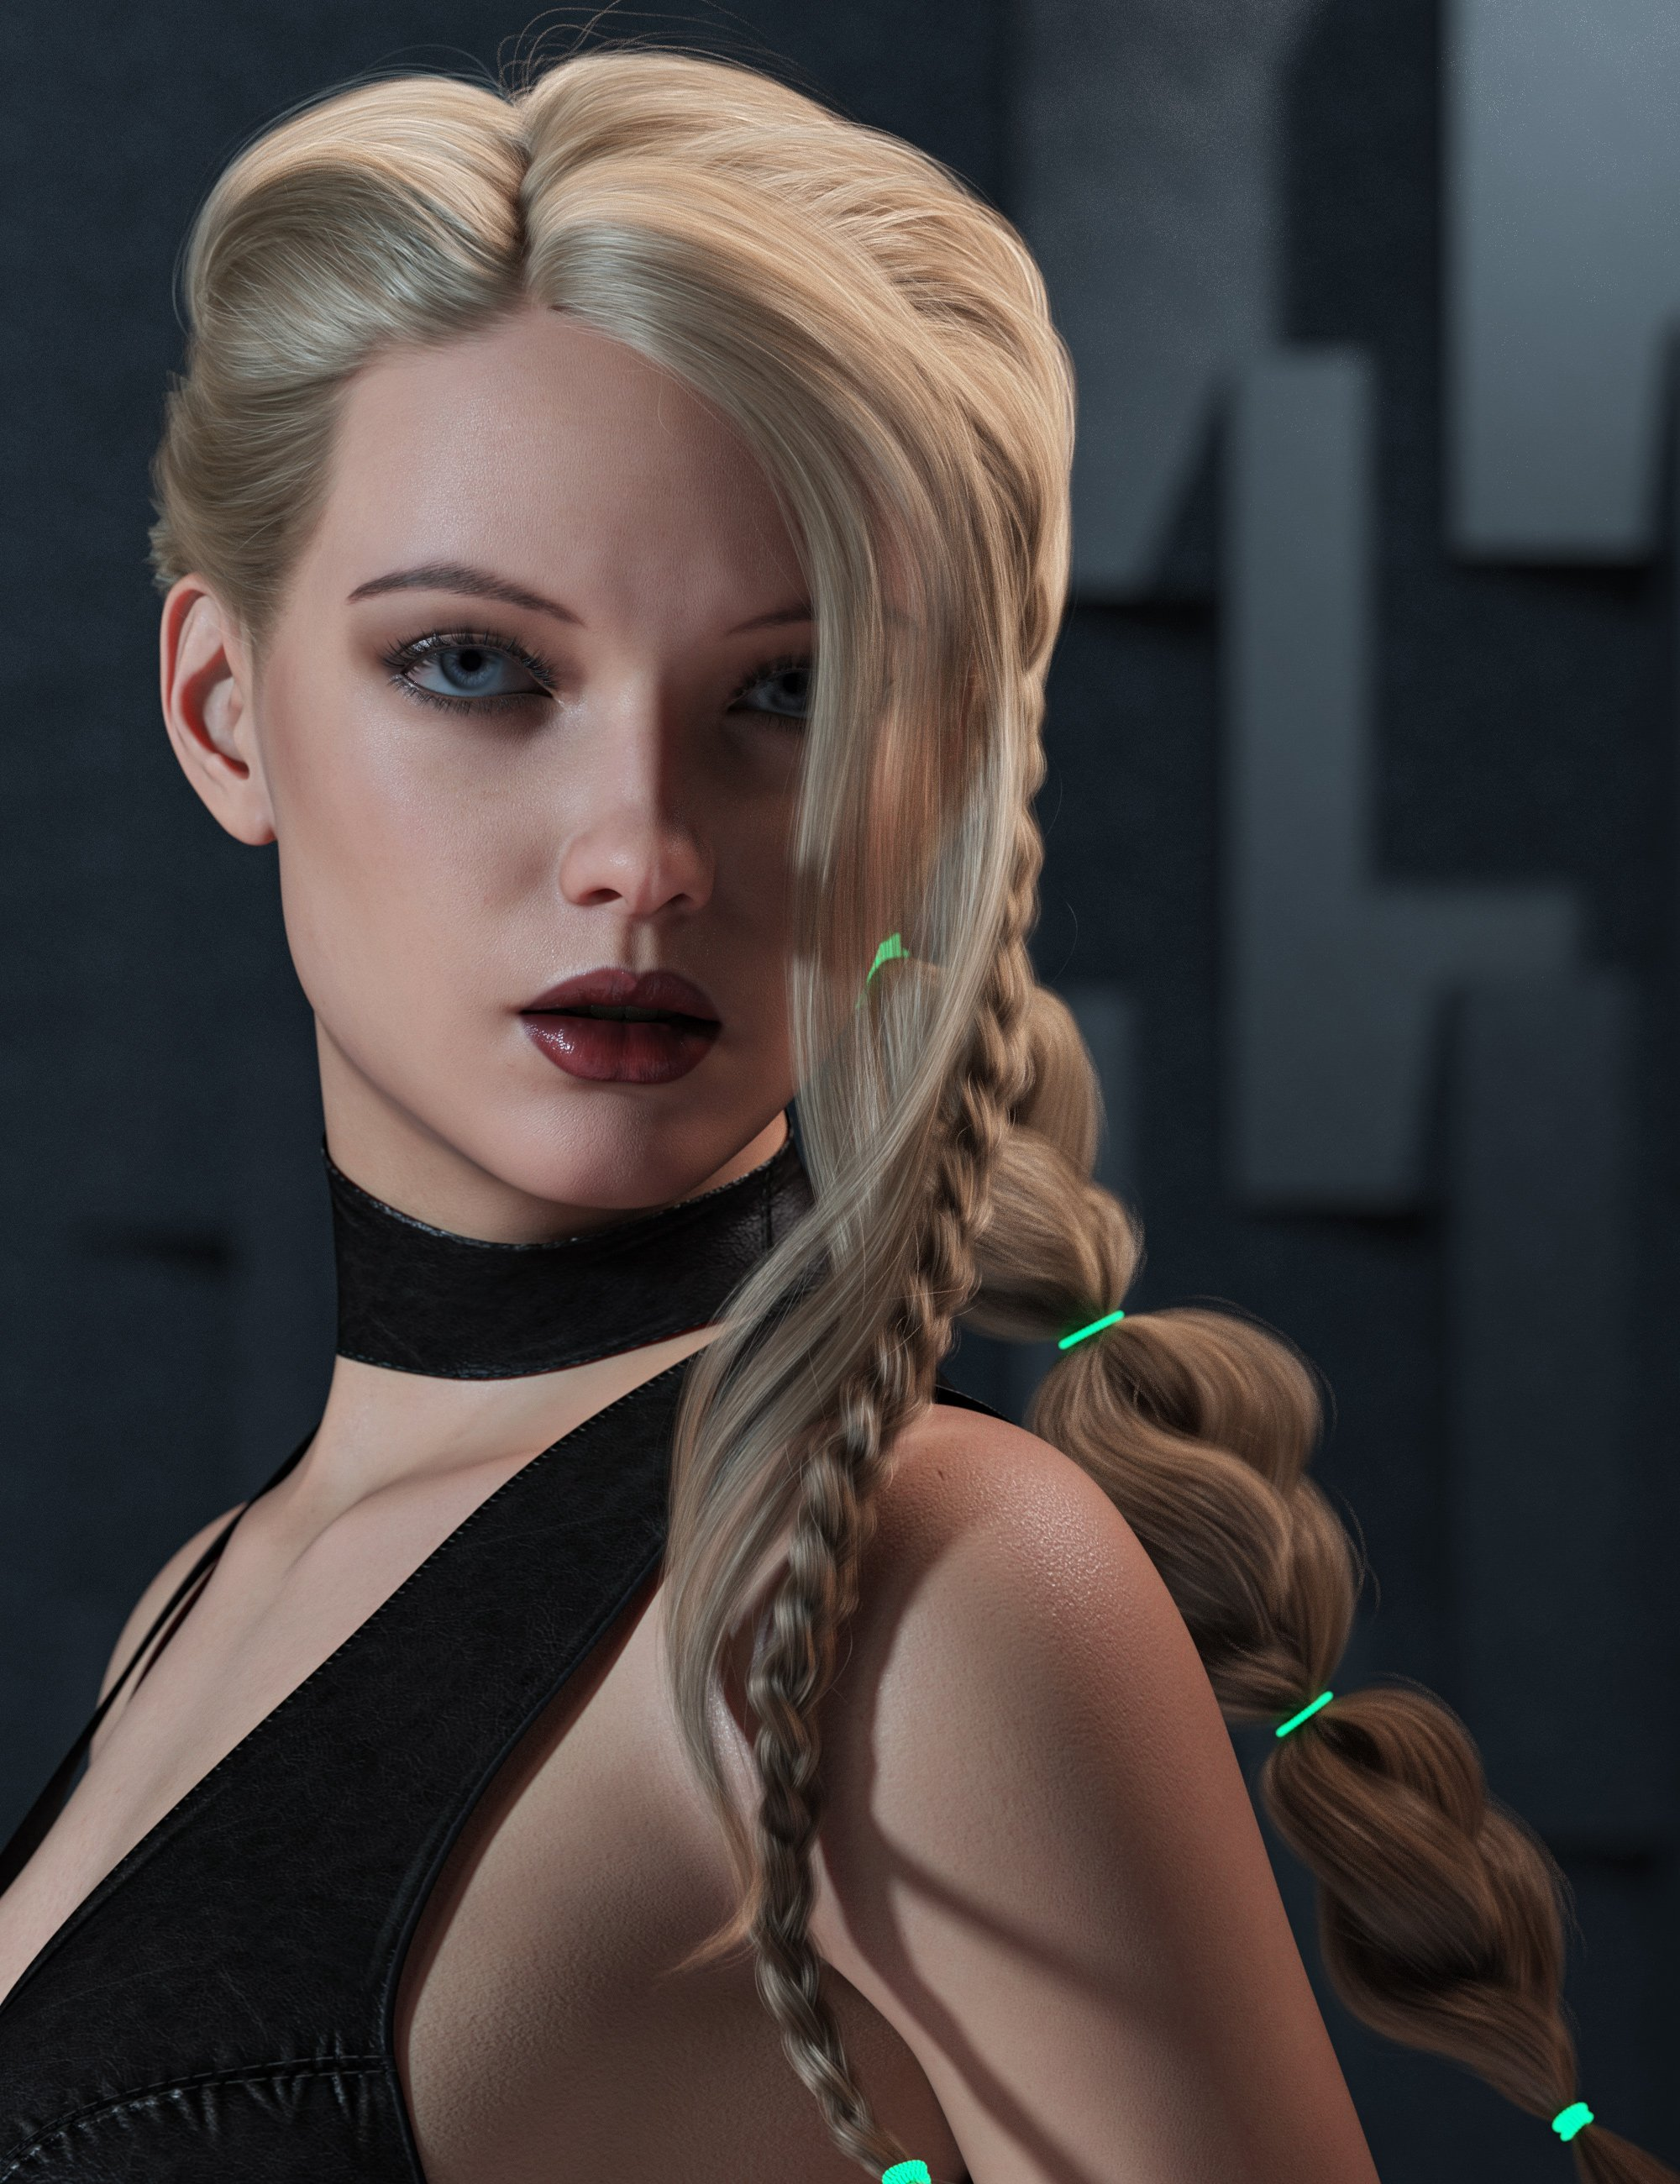 2021-14 Hair for Genesis 8 and 8.1 Females by: outoftouch, 3D Models by Daz 3D